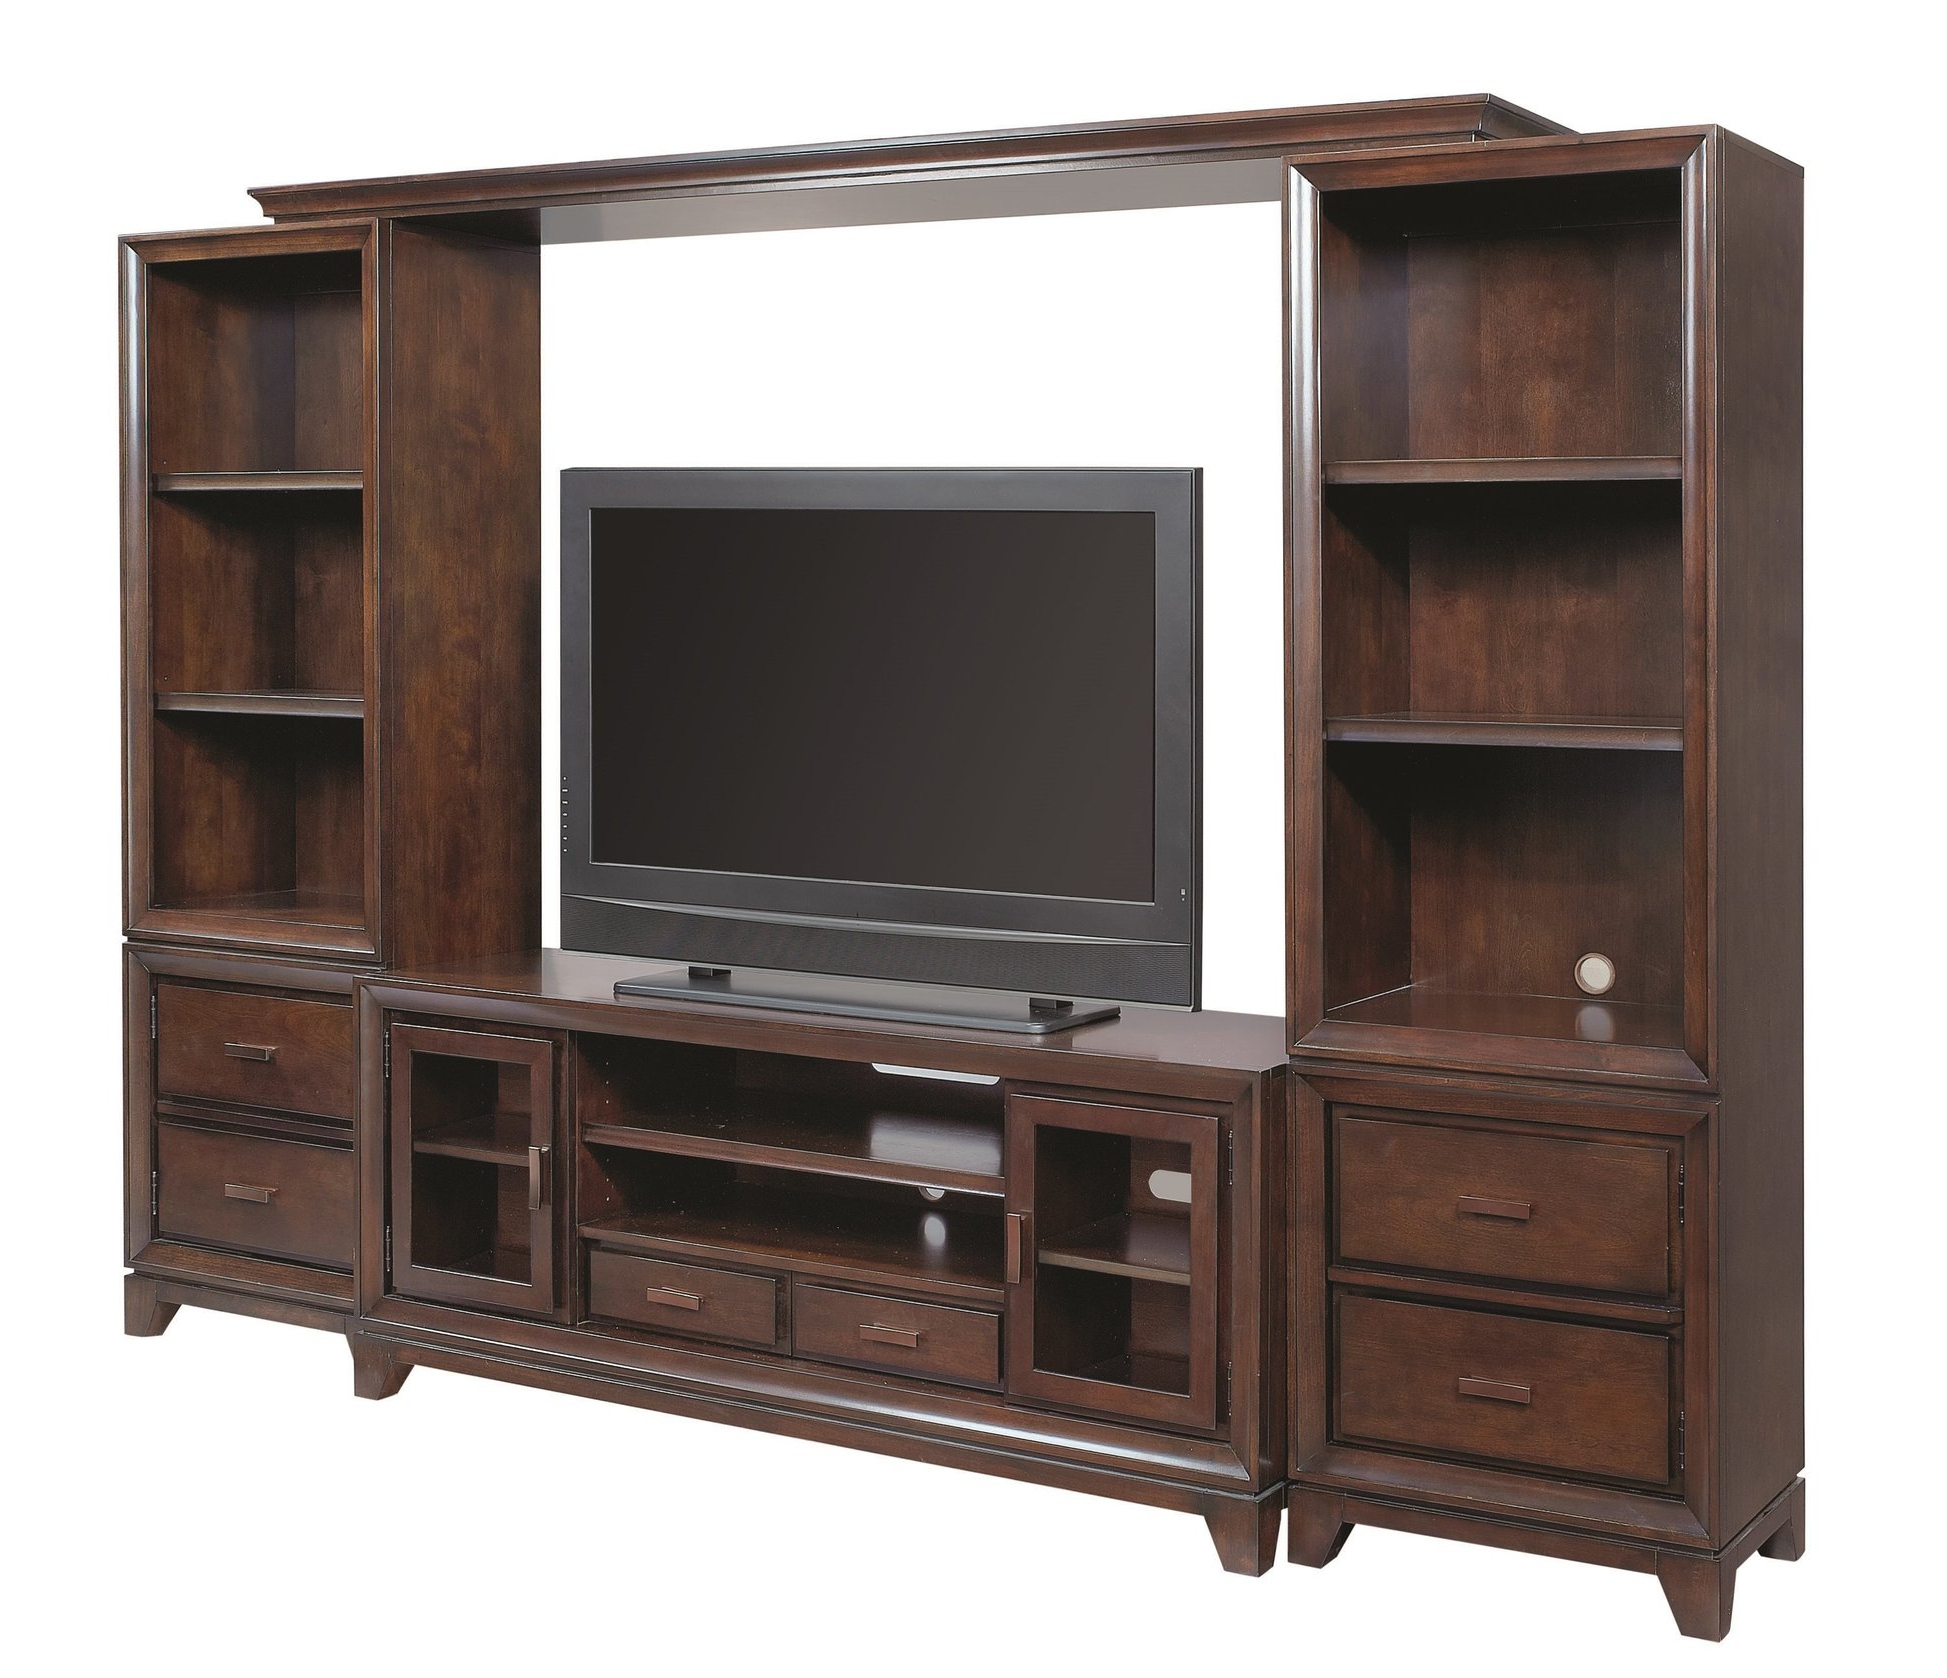 """The Viewline 65"""" Entertainment Wall Console Throughout Casey May Tv Stands For Tvs Up To 70"""" (View 14 of 20)"""